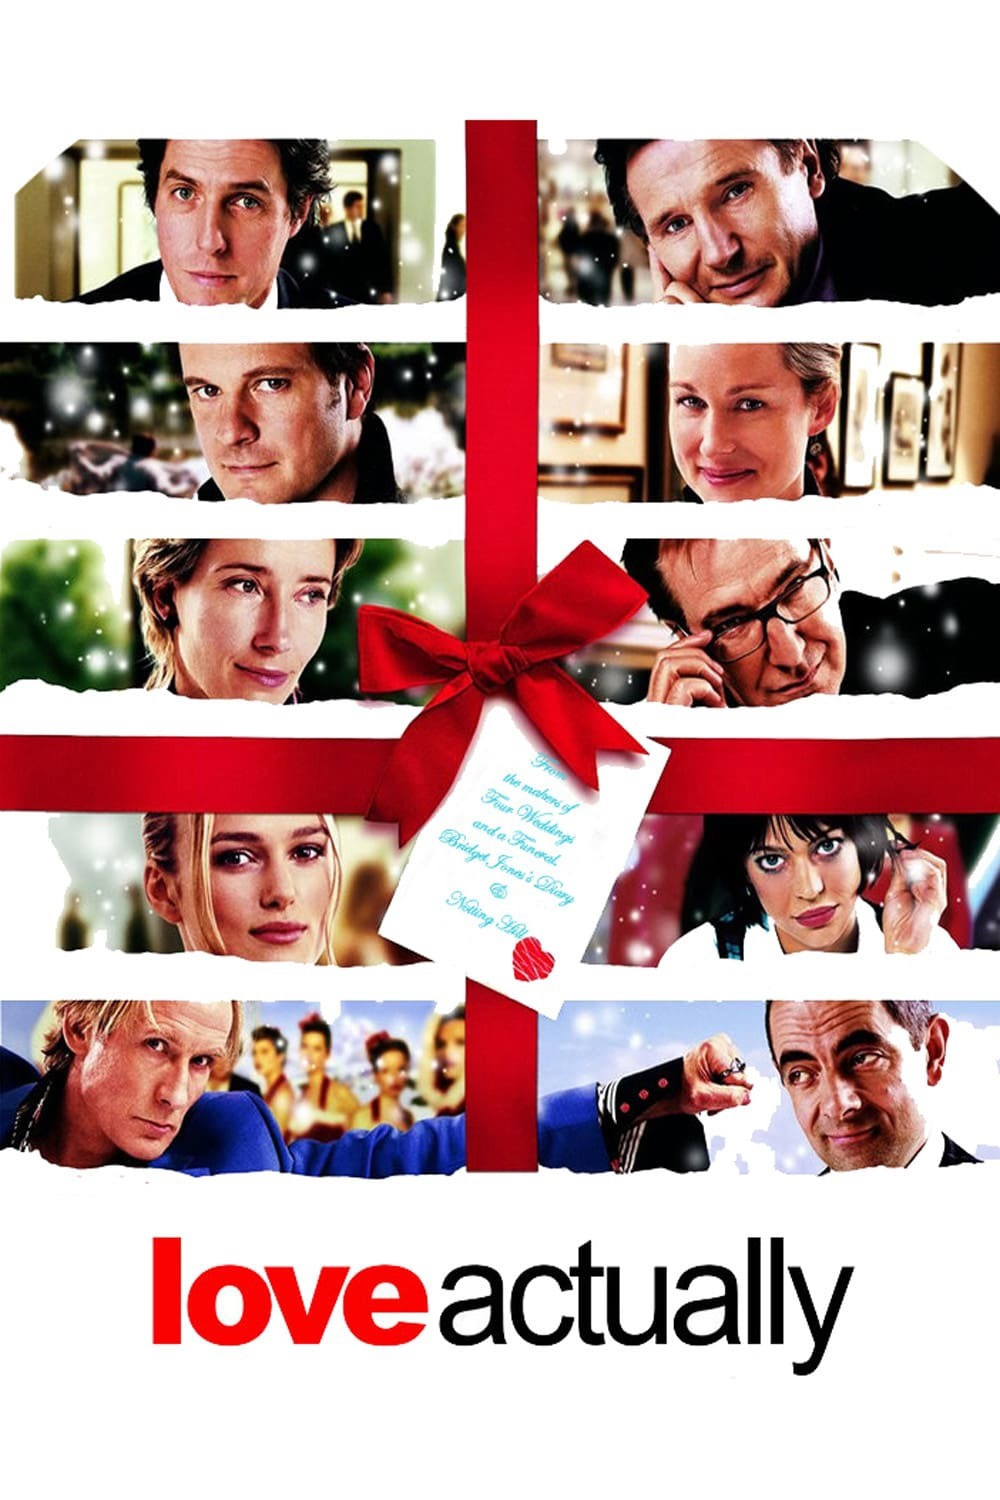 The poster for Love Actually showing photos of the main characters surrounded by ribbon